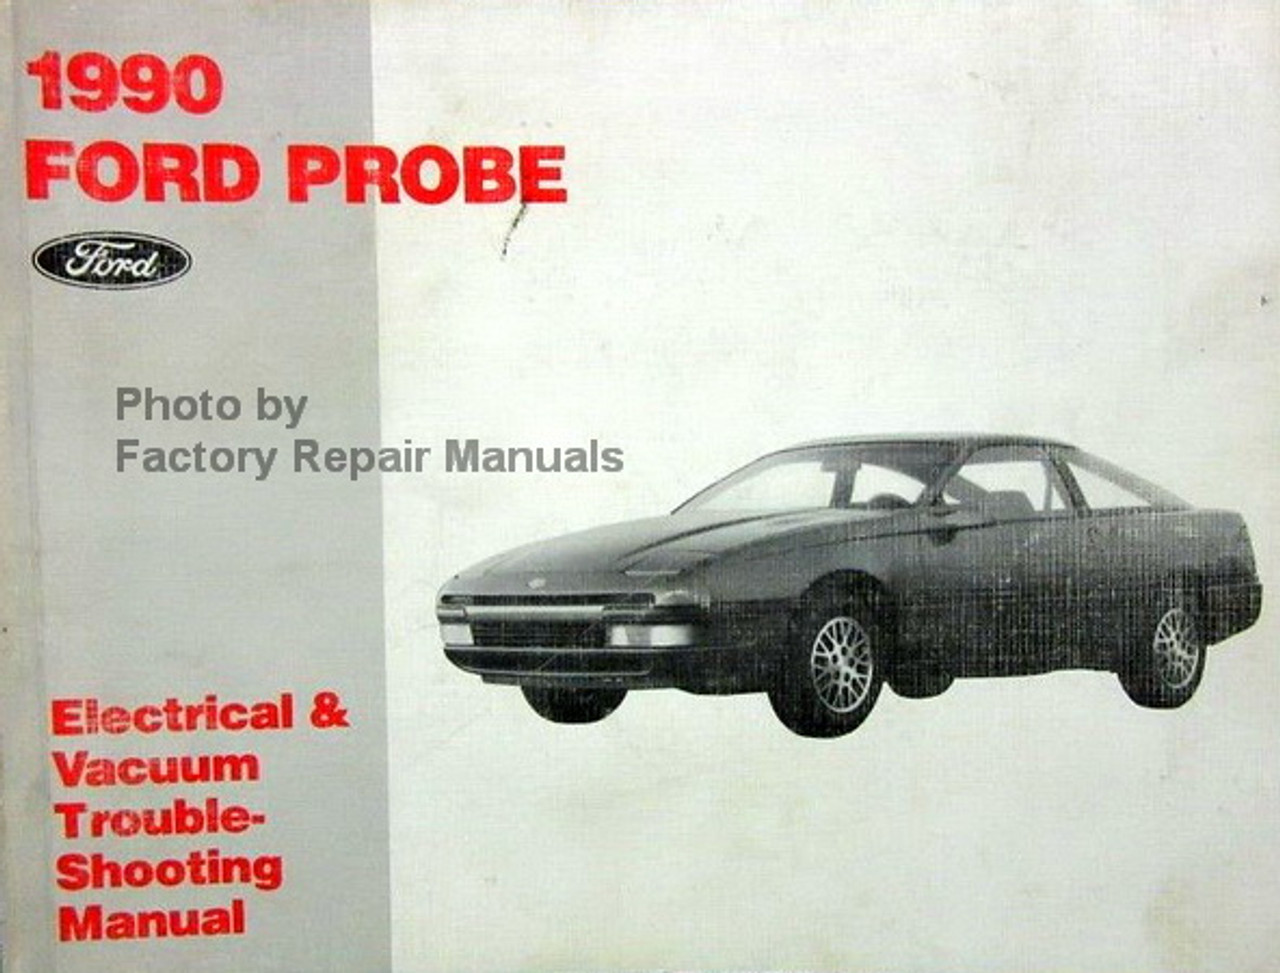 [SCHEMATICS_4FR]  1990 Ford Probe Electrical & Vacuum Troubleshooting Manual Wiring Diagrams  - Factory Repair Manuals | Ford Probe Wiring |  | Factory Repair Manuals